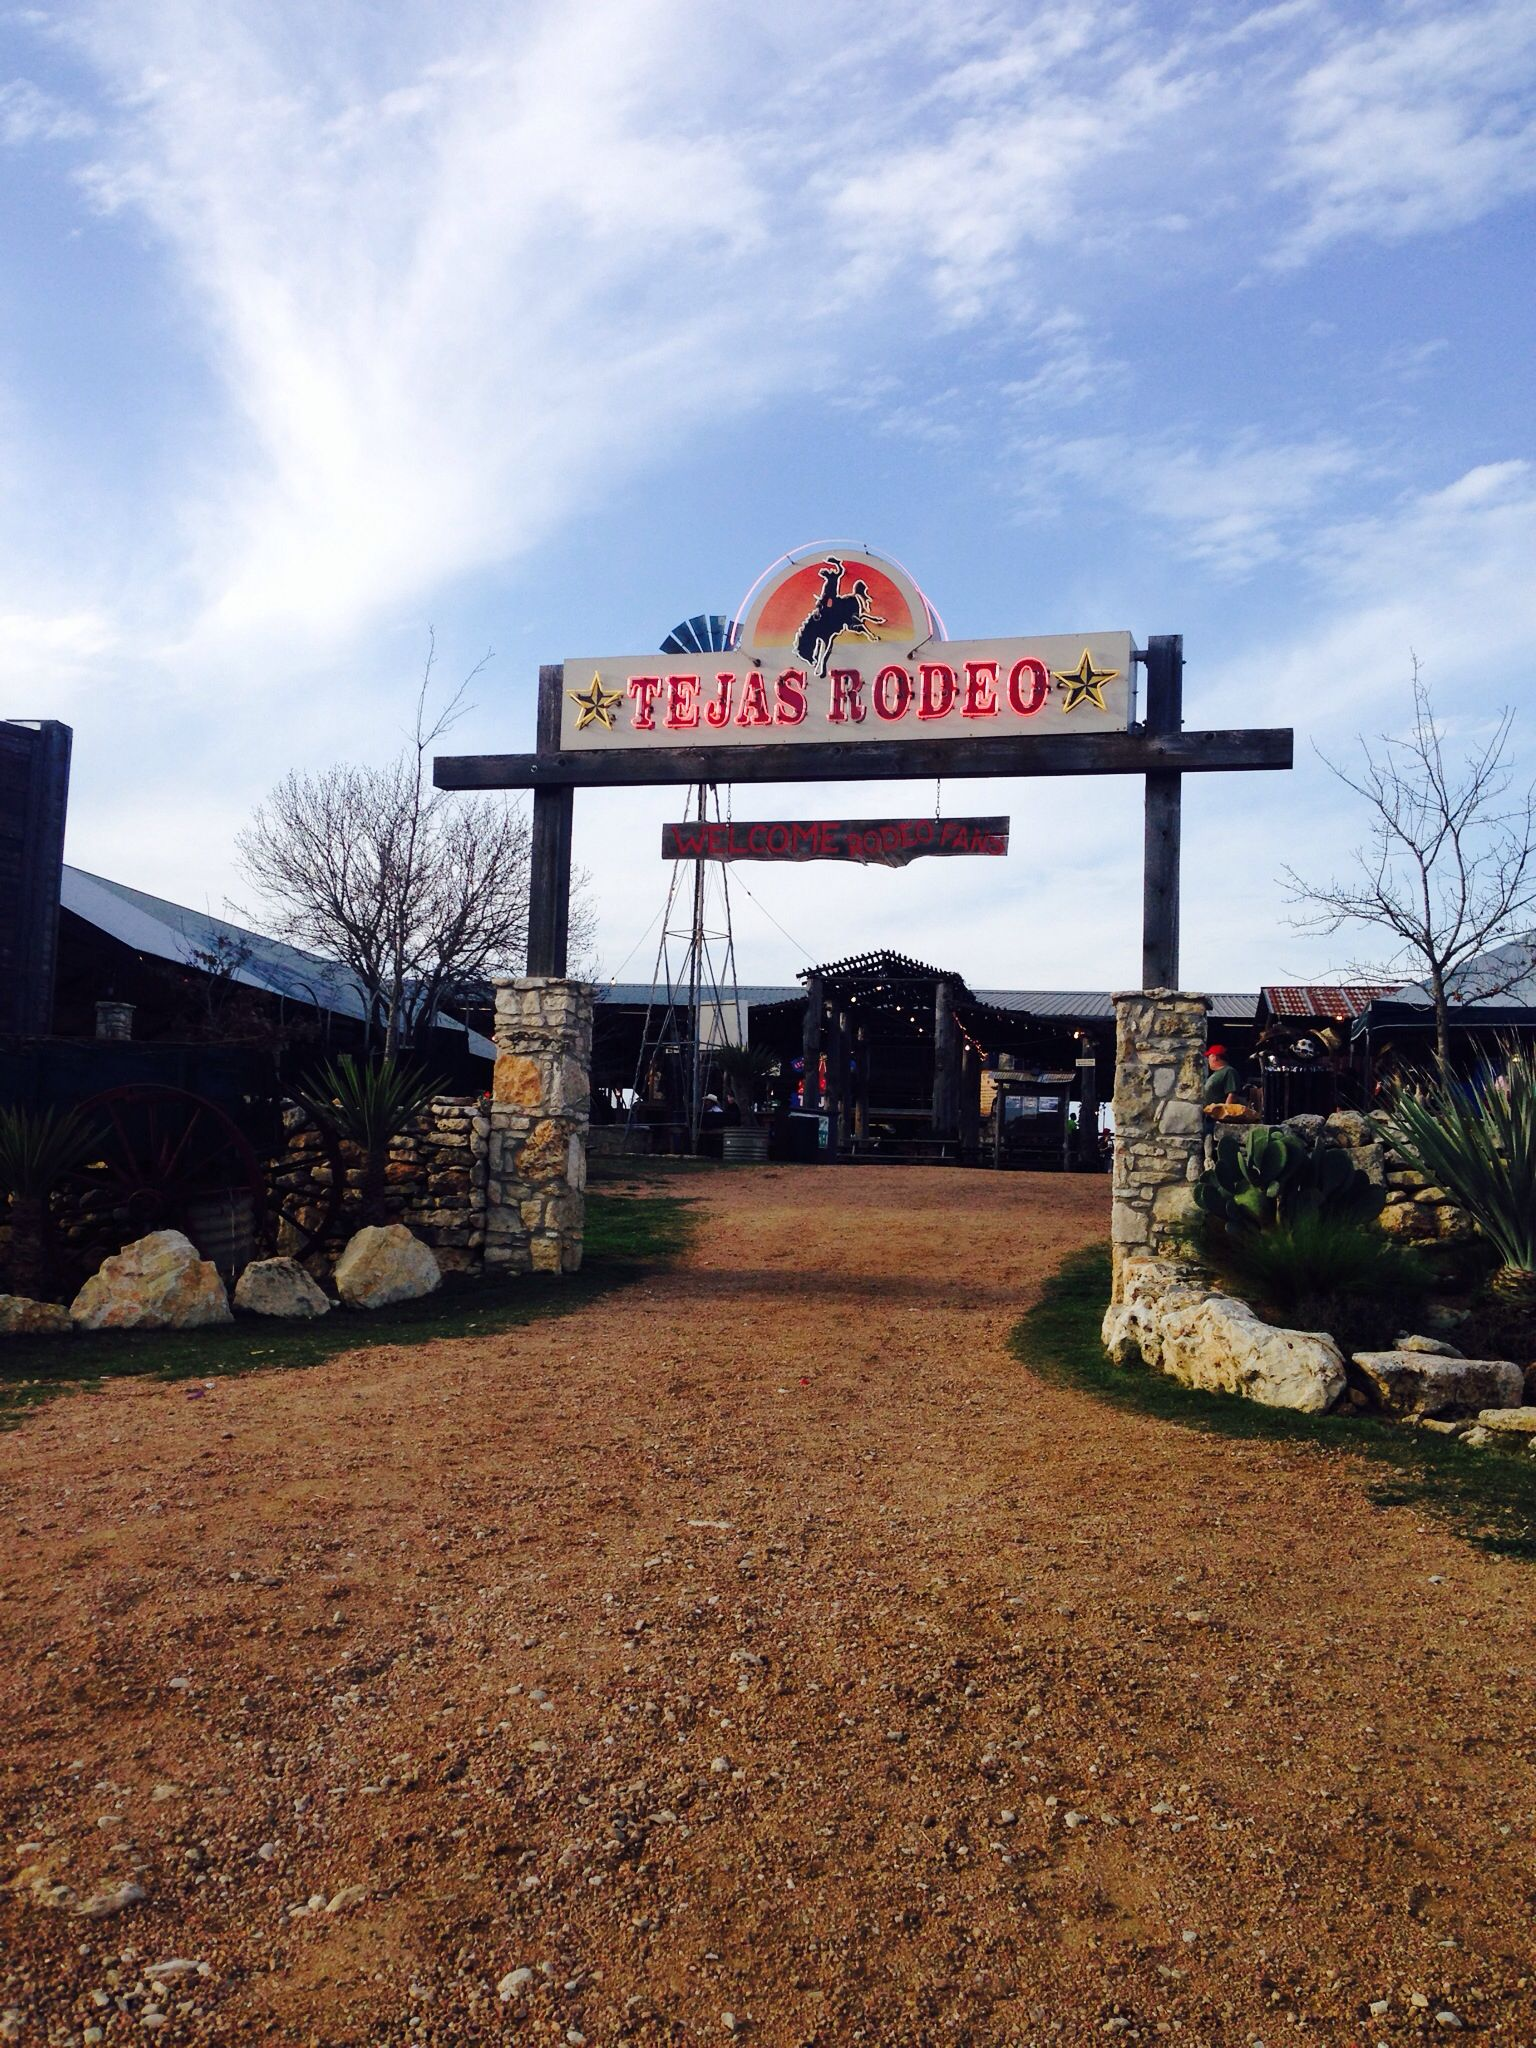 Tejas Rodeo In Bulverde Texas Rodeo Day Trips Road